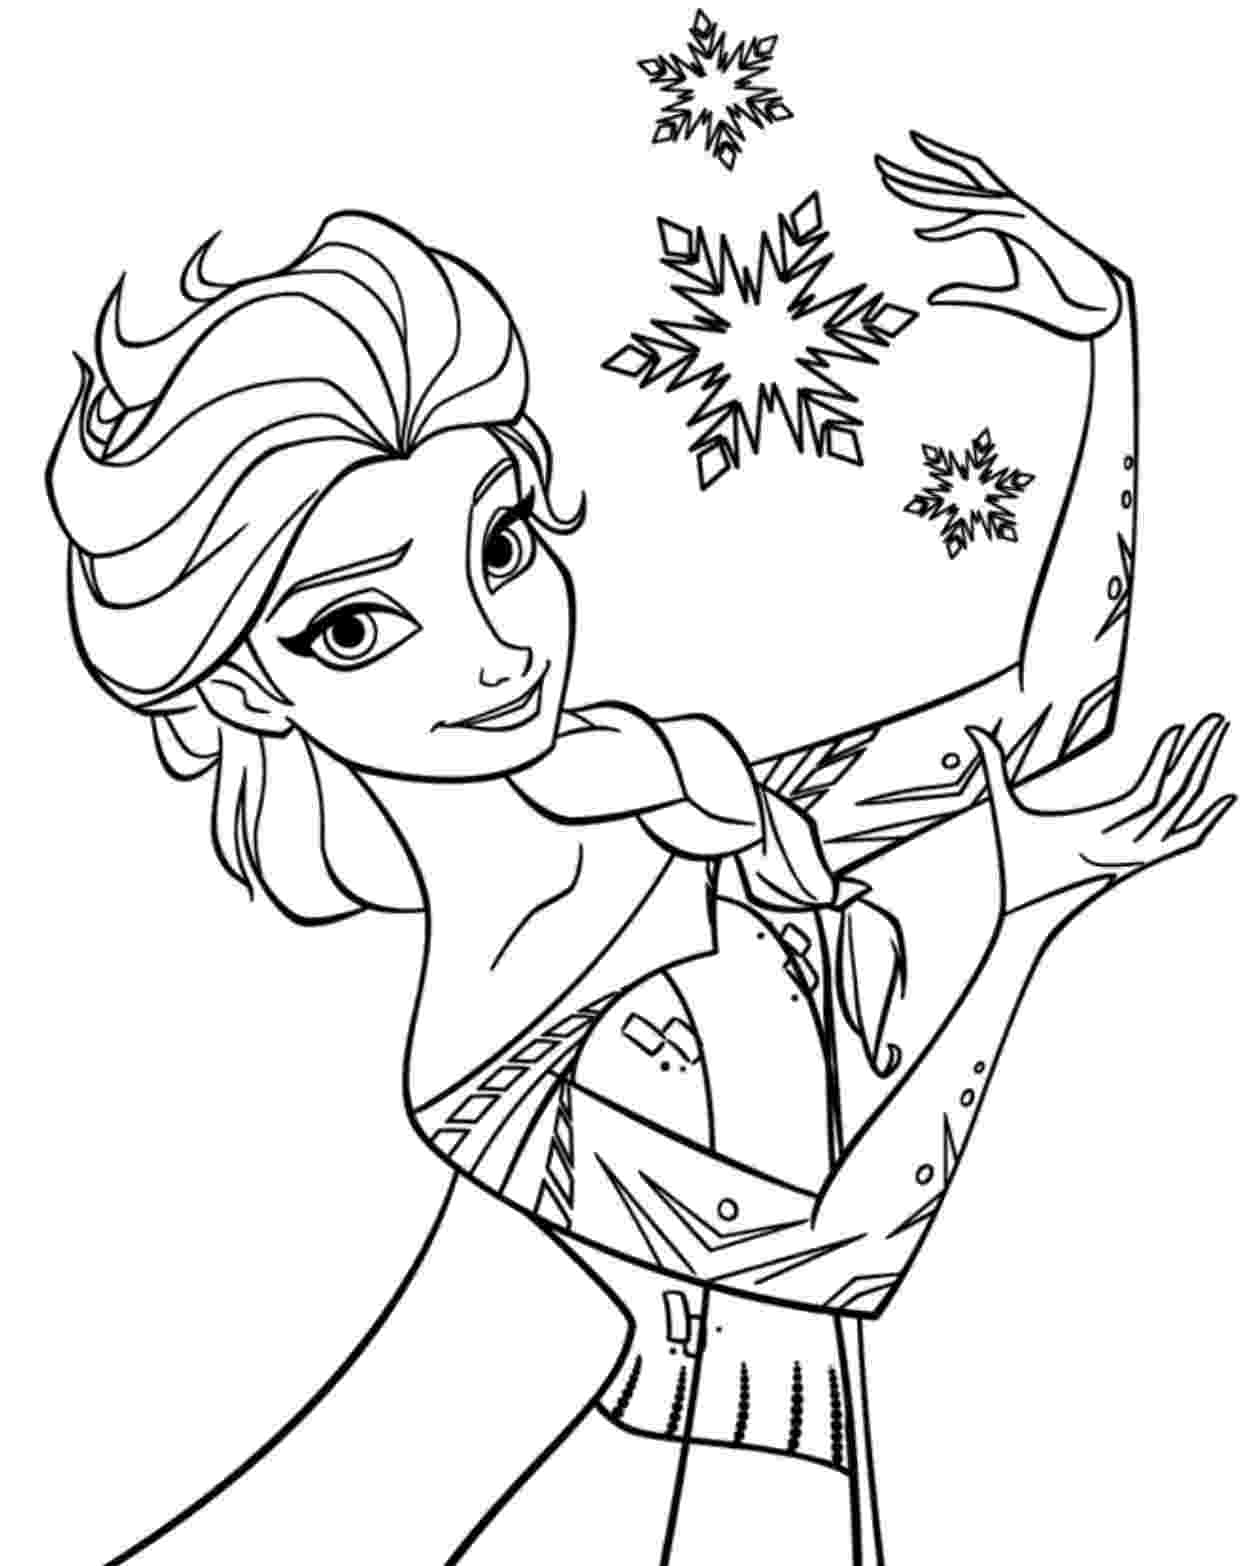 coloring pages of elsa free printable elsa coloring pages for kids best pages coloring elsa of